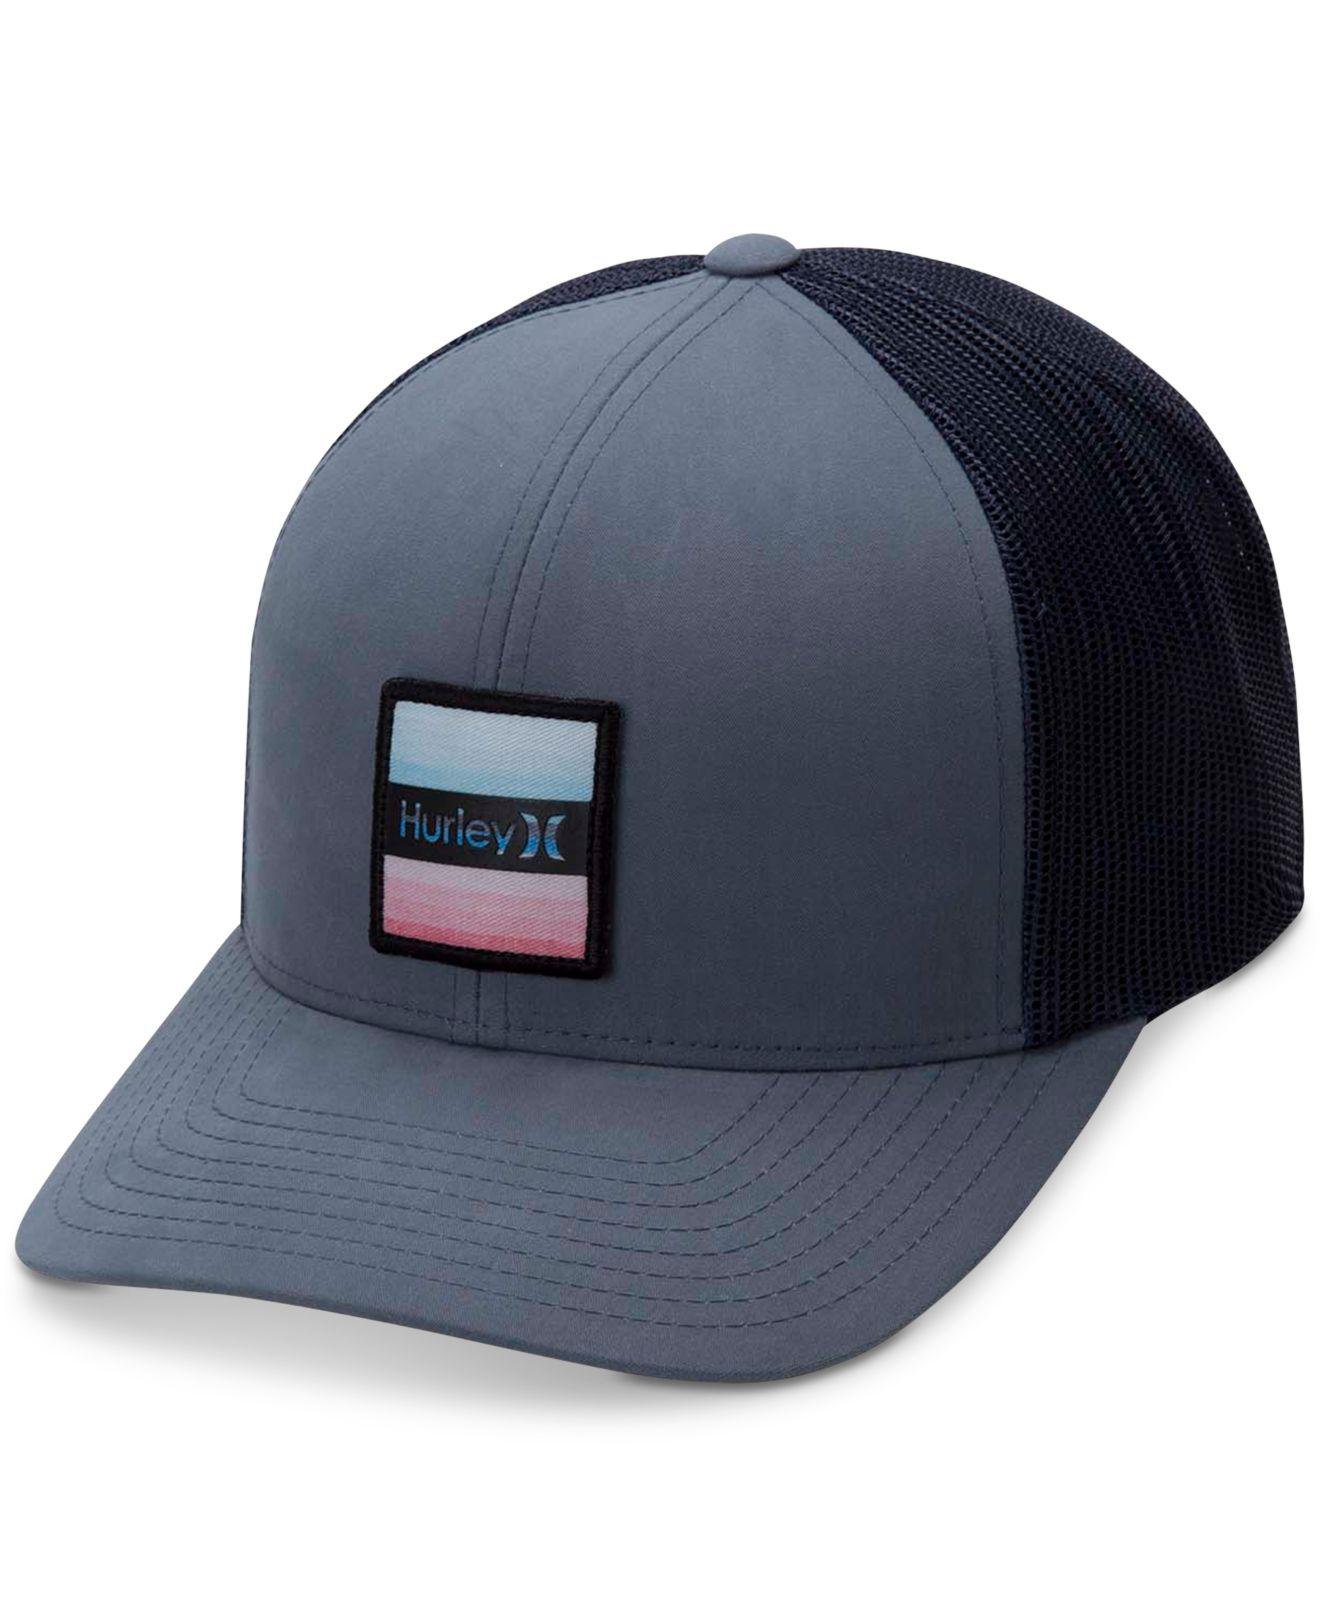 39719f6f7436b Lyst - Hurley Bayside Colorblocked Snapback Hat in Blue for Men